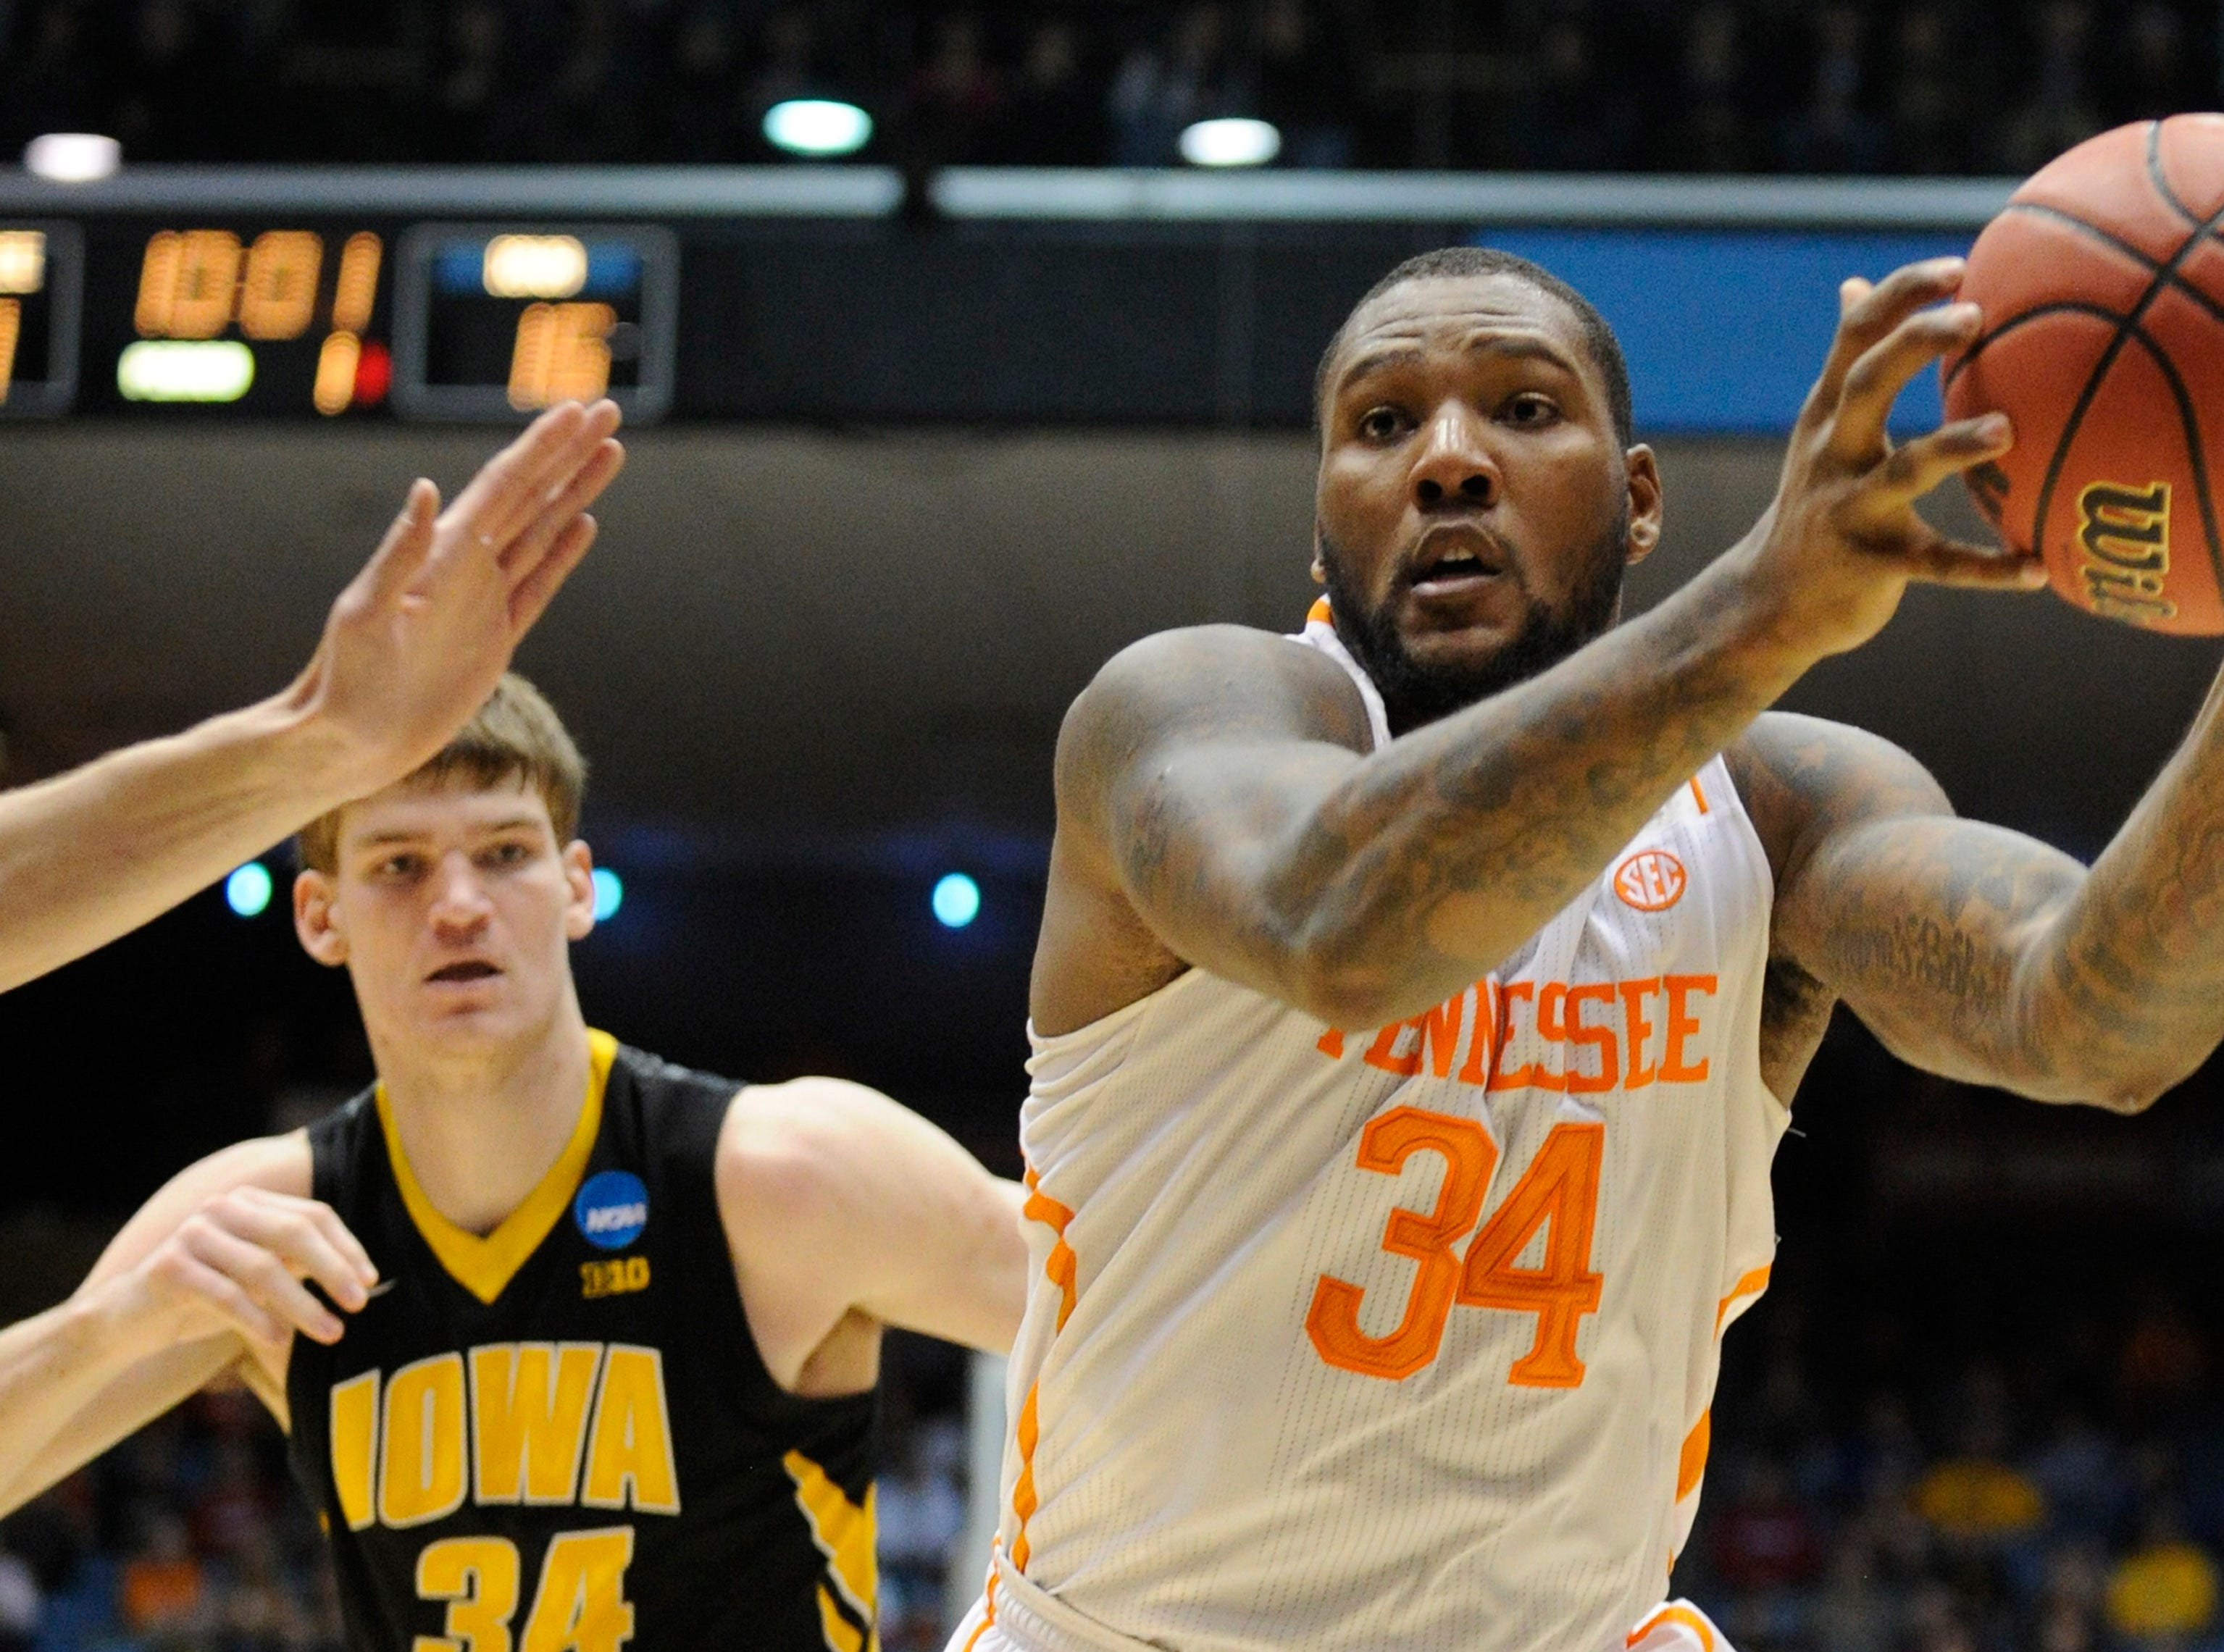 Tennessee forward Jeronne Maymon (34), right, reaches for a pass as Iowa center Adam Woodbury (34), left, defends during the first half of an NCAA tournament First Four play-in game at the University of Dayton Arena in Dayton, Ohio on Wednesday, March 19, 2014.